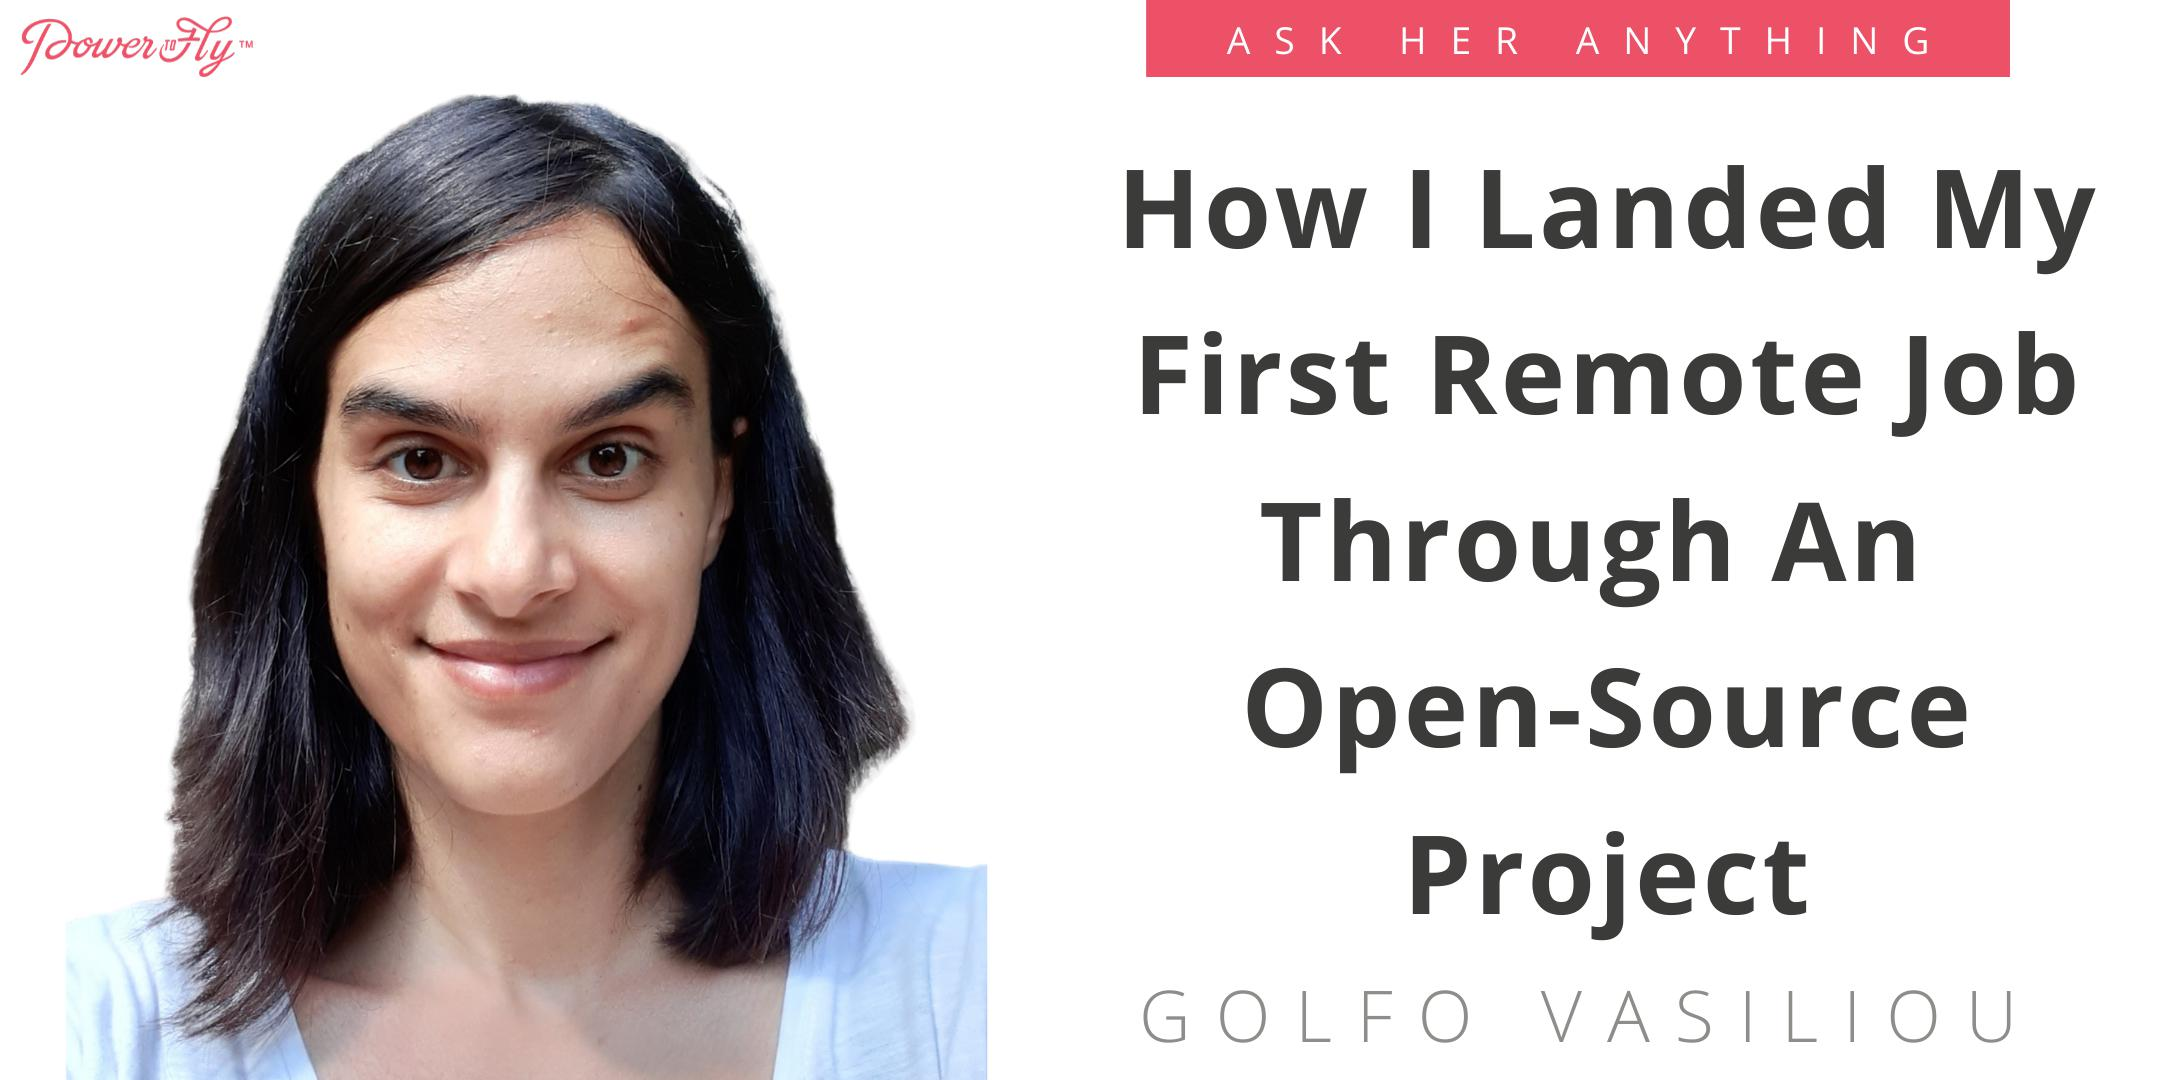 How I Landed My First Remote Job Through An Open-Source Project